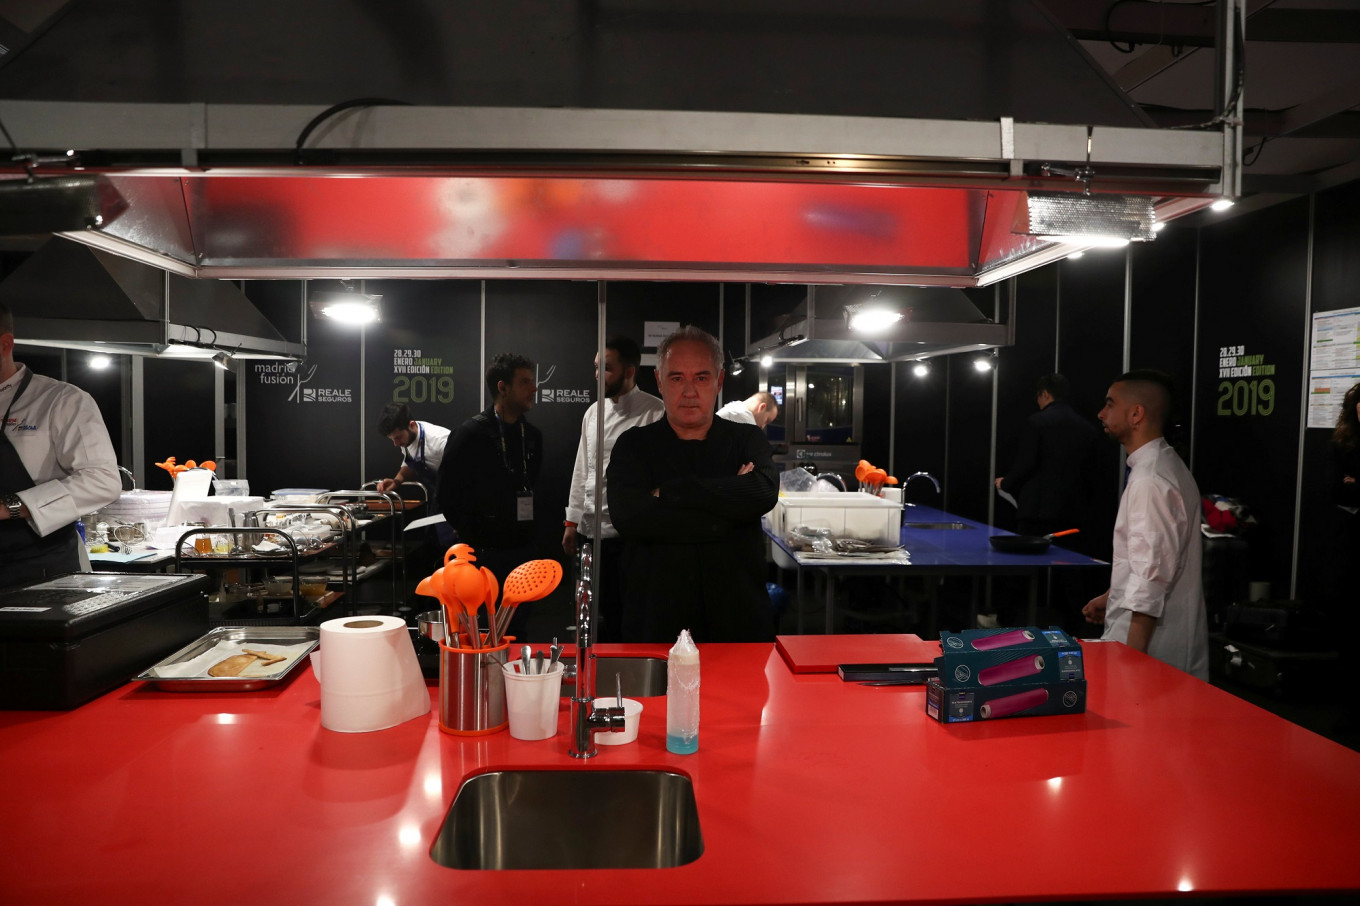 Spanish chef Adria to reopen famed elBulli, won't serve food - Food on kelly mobile home, swiss mobile home, apollo mobile home, tuscany mobile home, ford mobile home, bentley mobile home, piedmont mobile home, ace mobile home, pioneer mobile home, aurora mobile home,